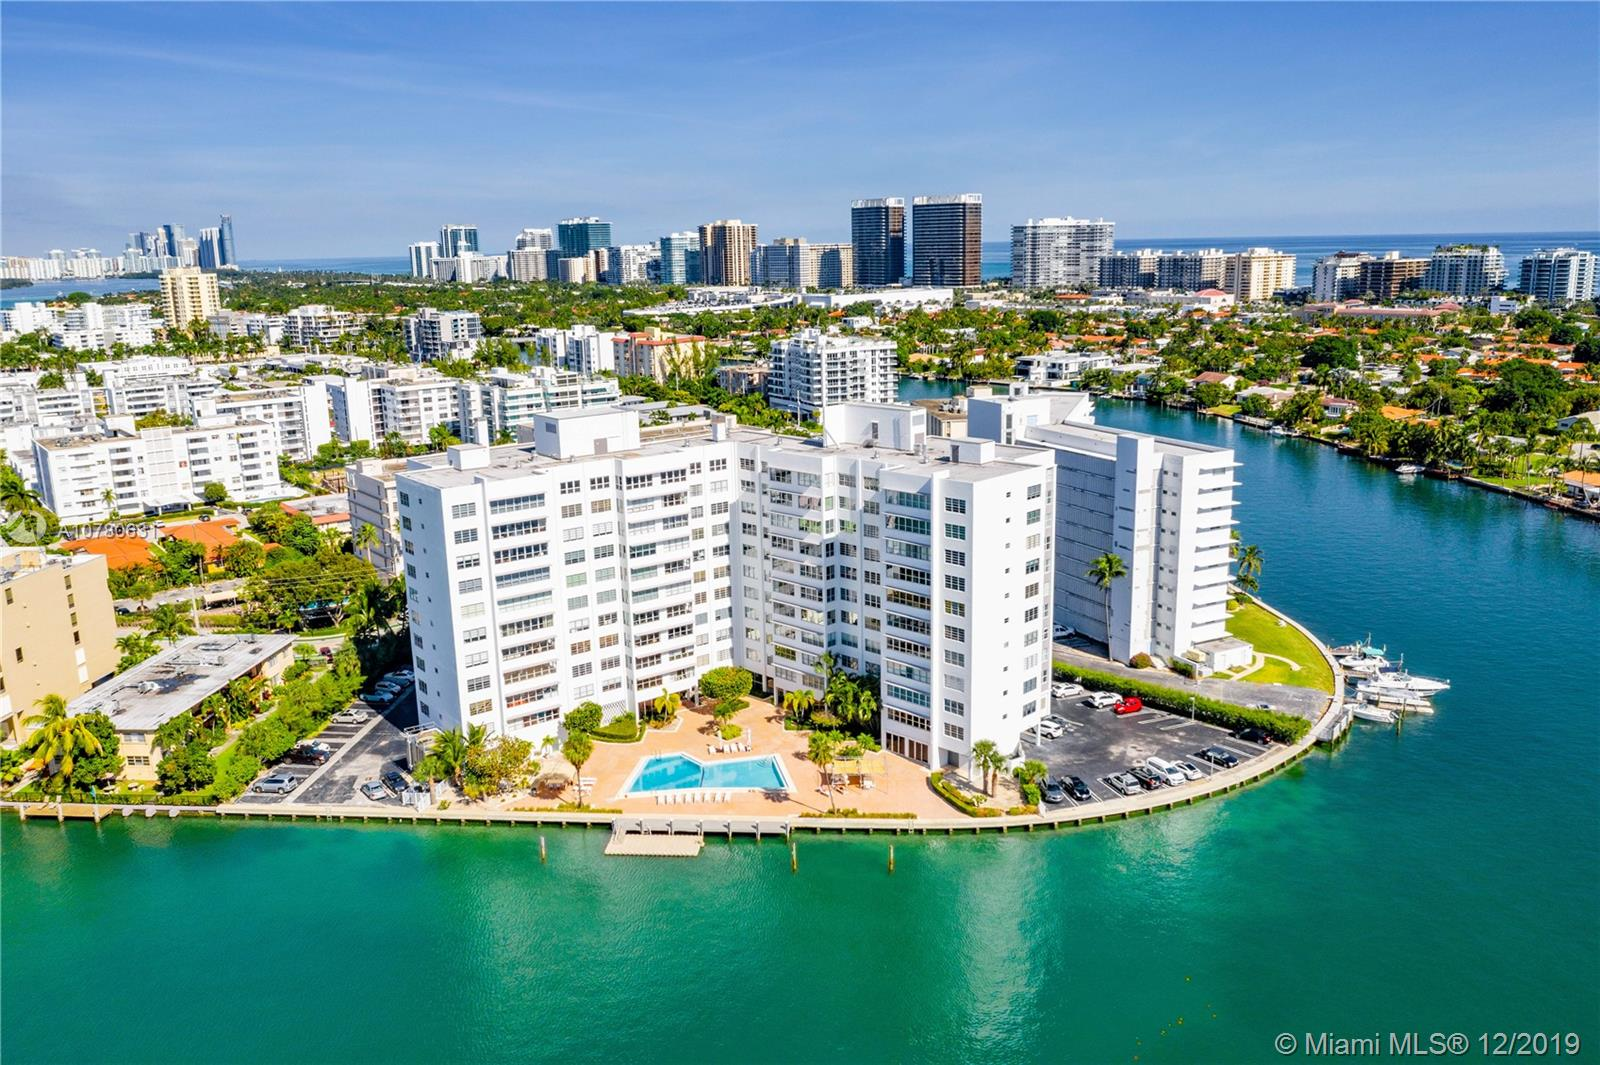 Enjoy stunning views of the Indian Creek Waterways and Golf Course from this upgraded two bedroom, one and one-half bath in recently-renovated Blair House located in a premium location: the most southern point of Bay Harbor Islands. This unit has many upgrades including impact windows, a new open kitchen, room to install a washer and dryer, upgraded bathrooms and great closet space. There is one parking deeded and additional parking available. Blair House, a modern 11-story building with 76 units, went through renovations including a new waterfront gym, a bay-front dock and pool and updates to the common areas, lobby, hallways, façade and more. A/C and hot water is included in the maintenance fees. The condo is close to the beach, Bal Harbour shops, parks, restaurants, houses of worship.